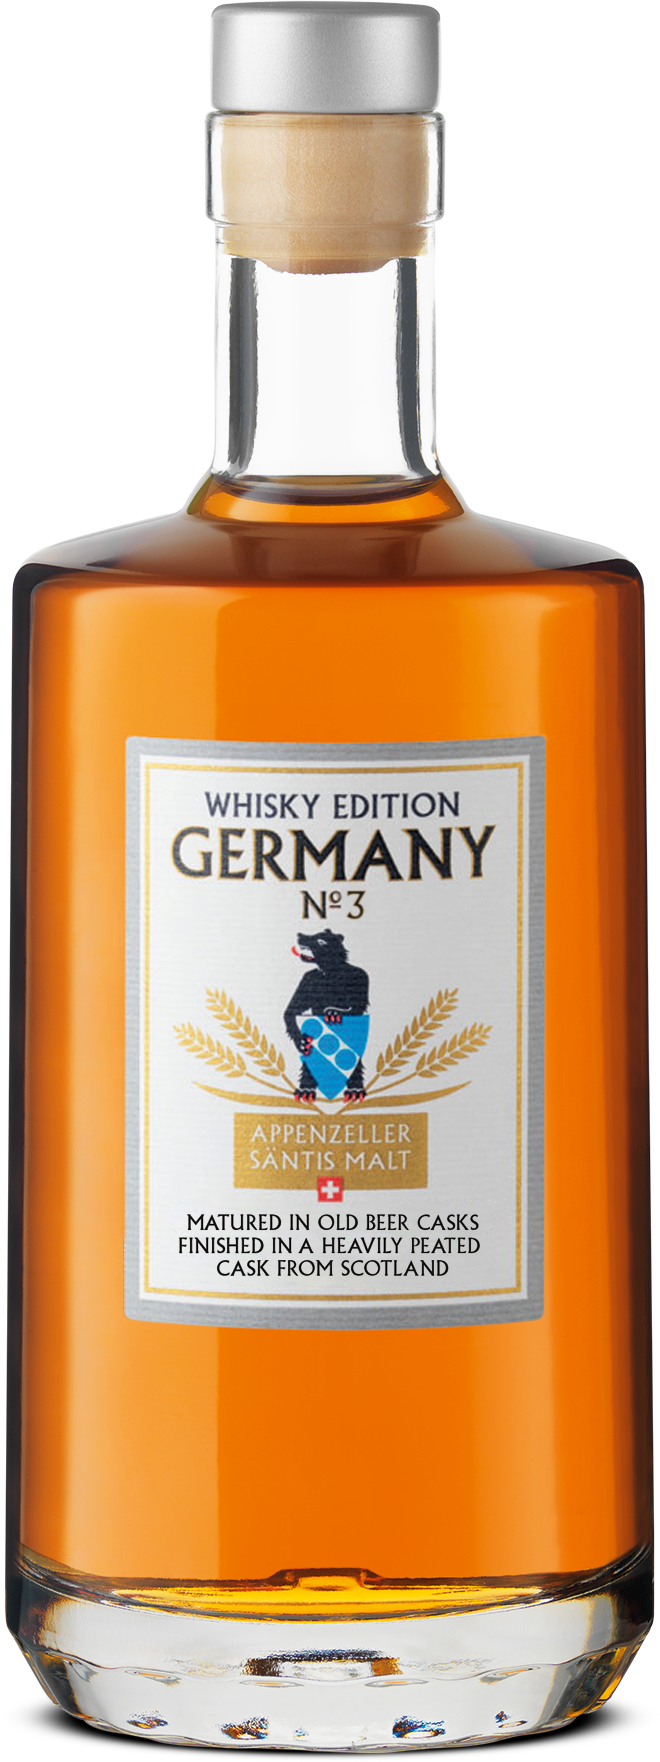 Säntis Malt Edition Germany N° 3 – Hogshead Finish